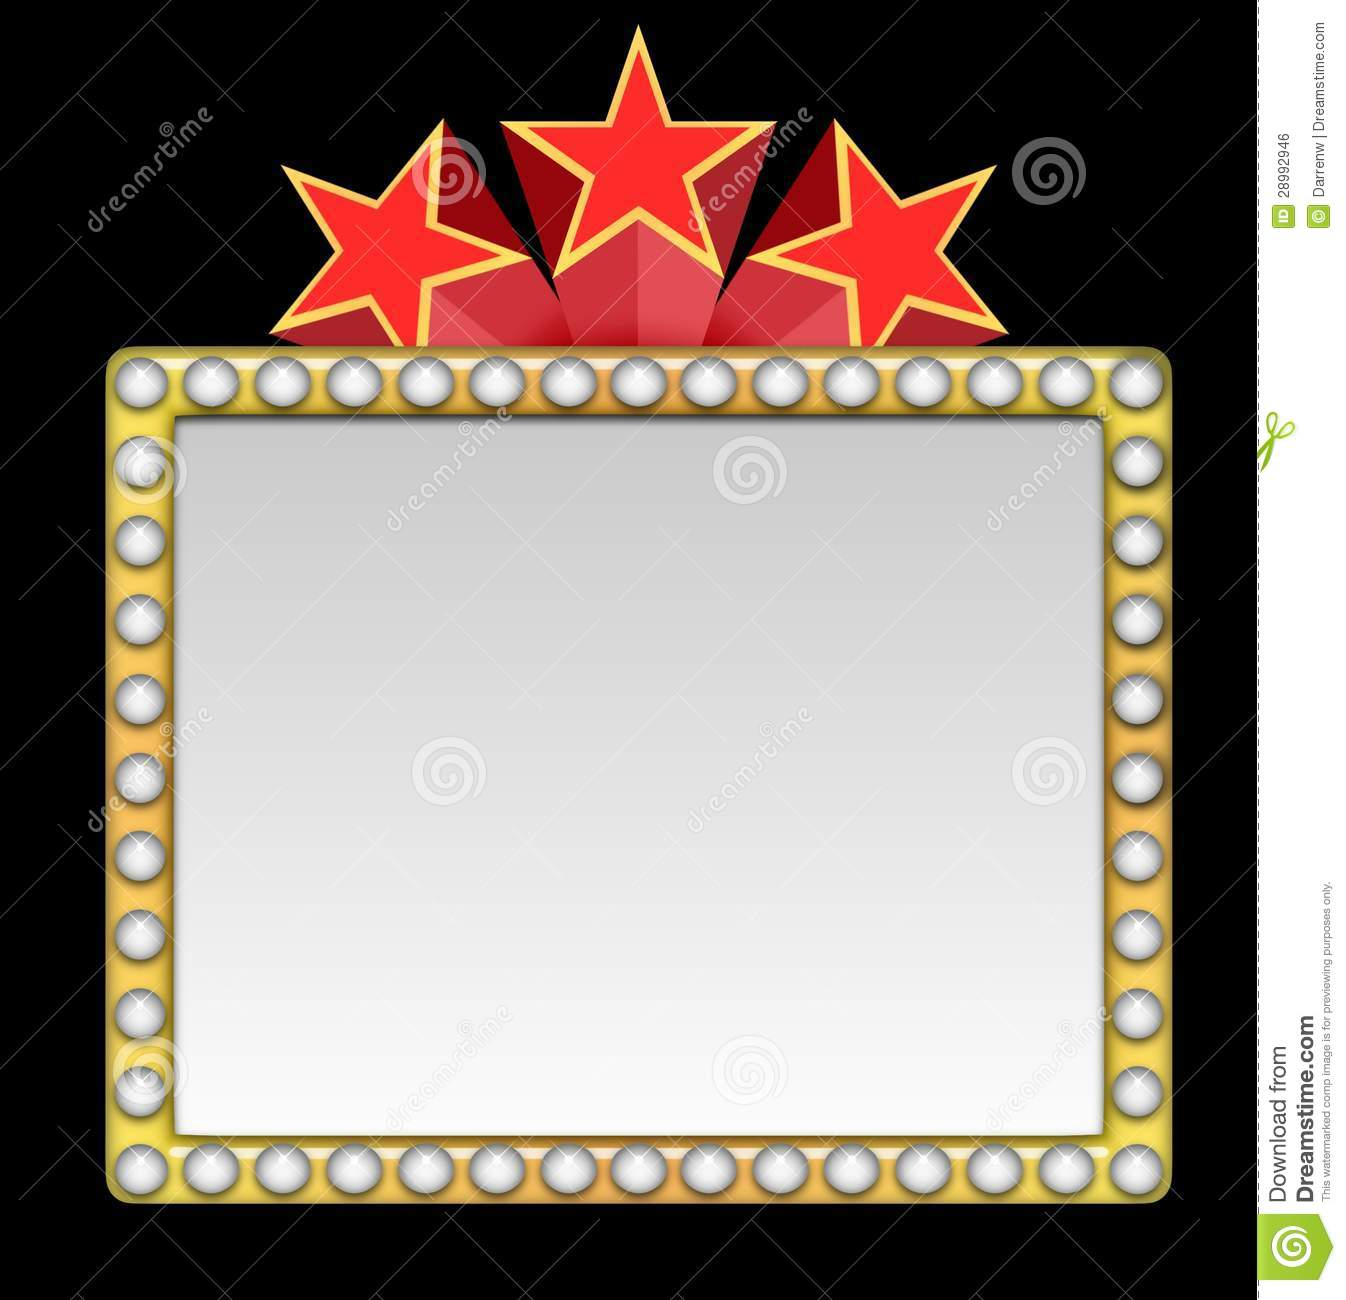 clipart royalty free Hollywood clipart border. Free cliparts download clip